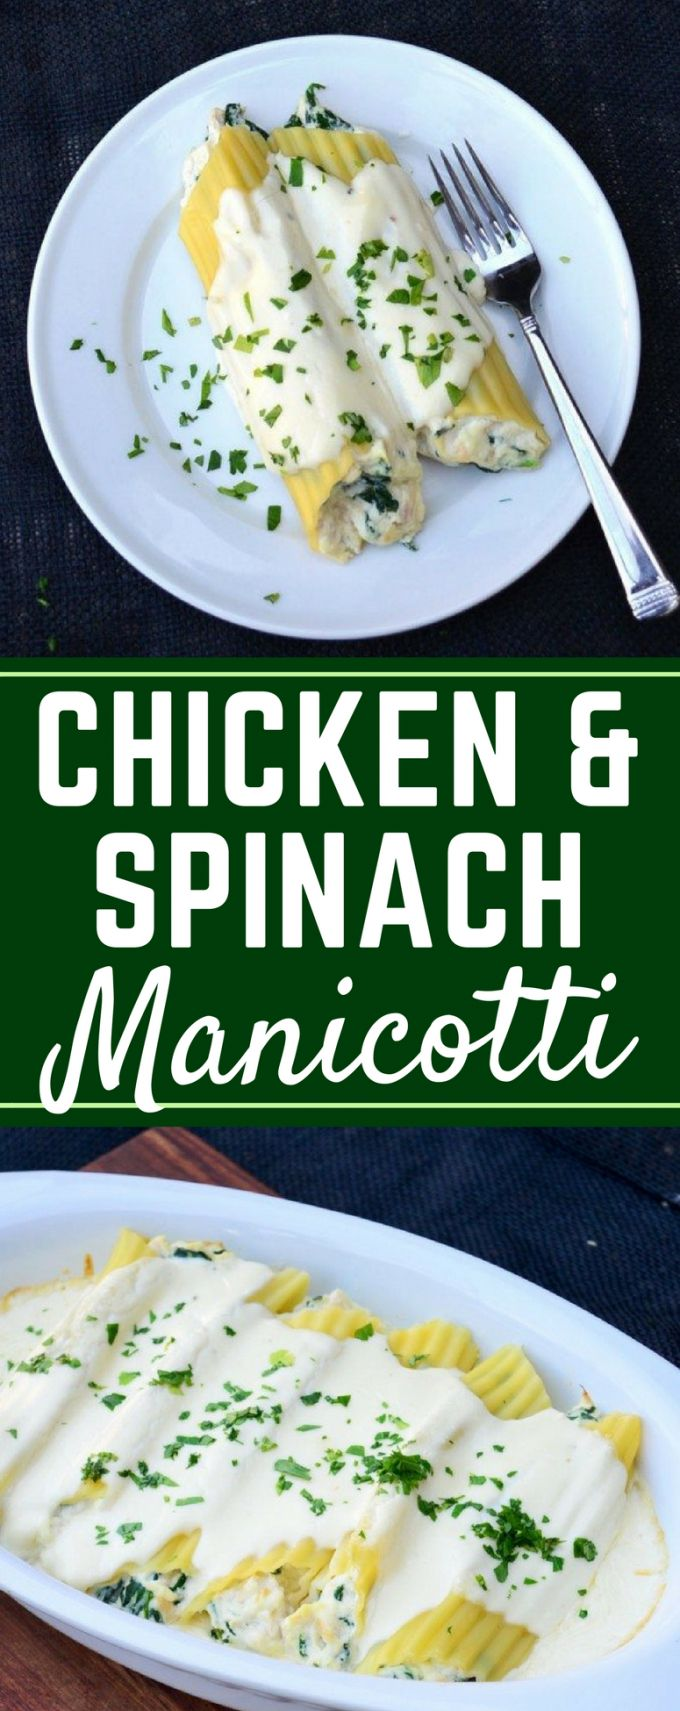 This Chicken and Spinach Manicotti is super easy to make, and smothered in a Copycat Olive Garden Alfredo Sauce. Plus, a hack for filling manicotti!